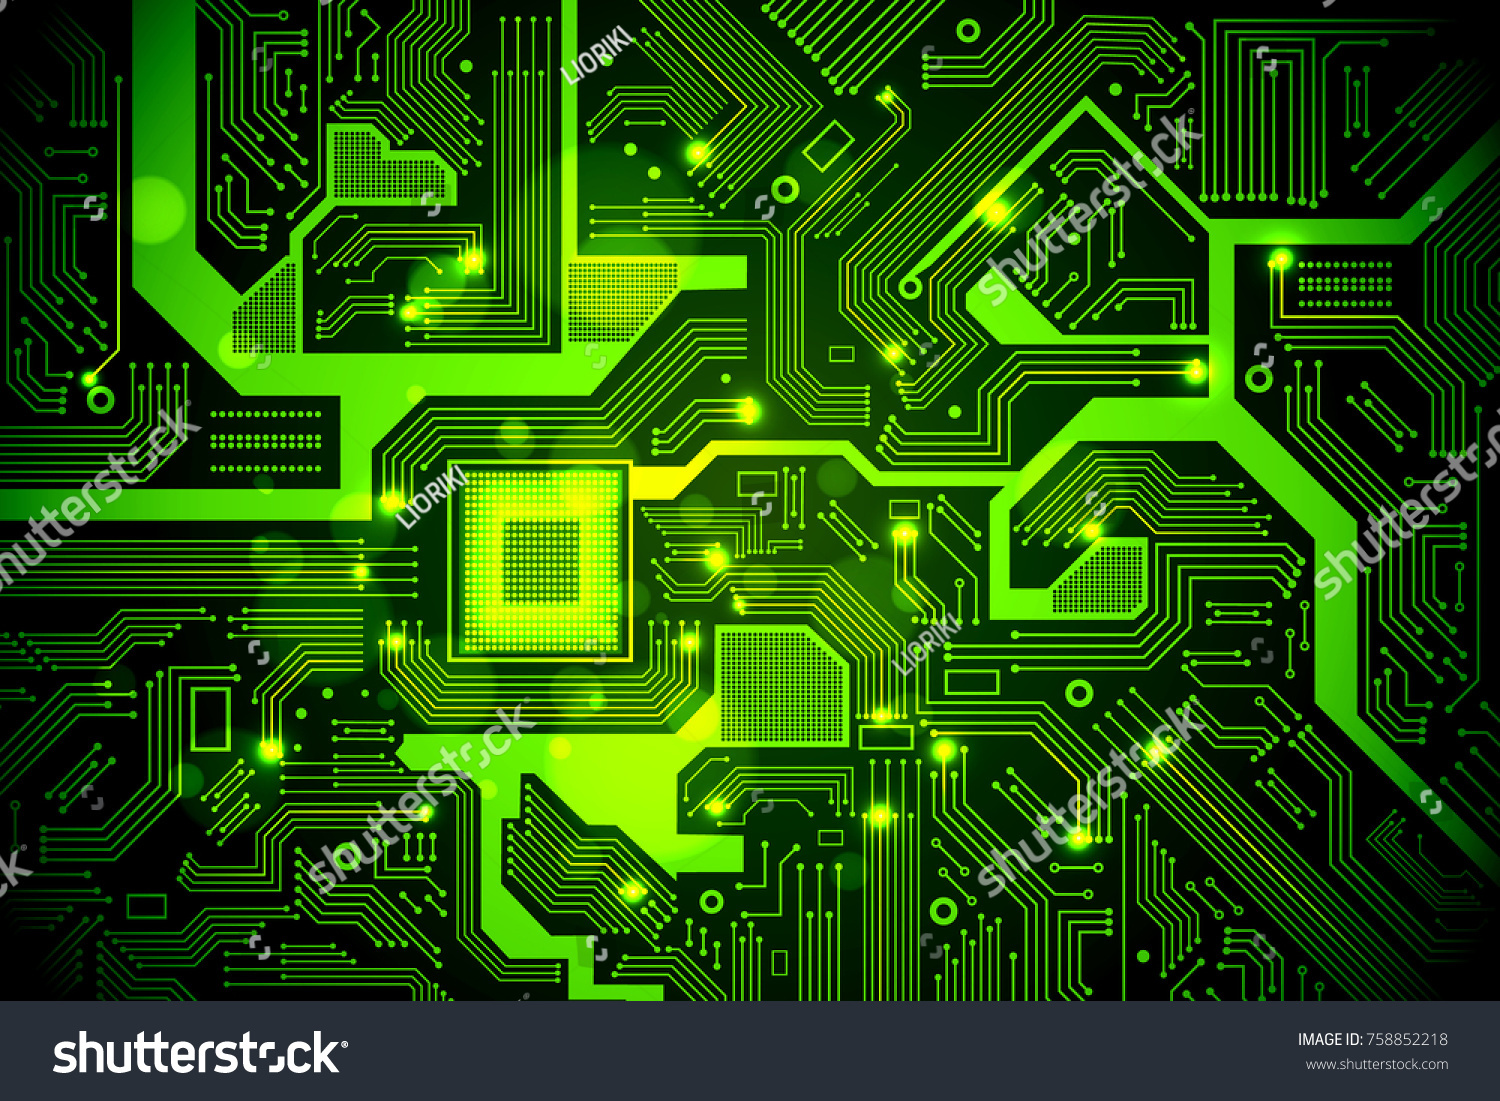 High Tech Electronic Circuit Board Vector Stock Royalty Free Symbols Background